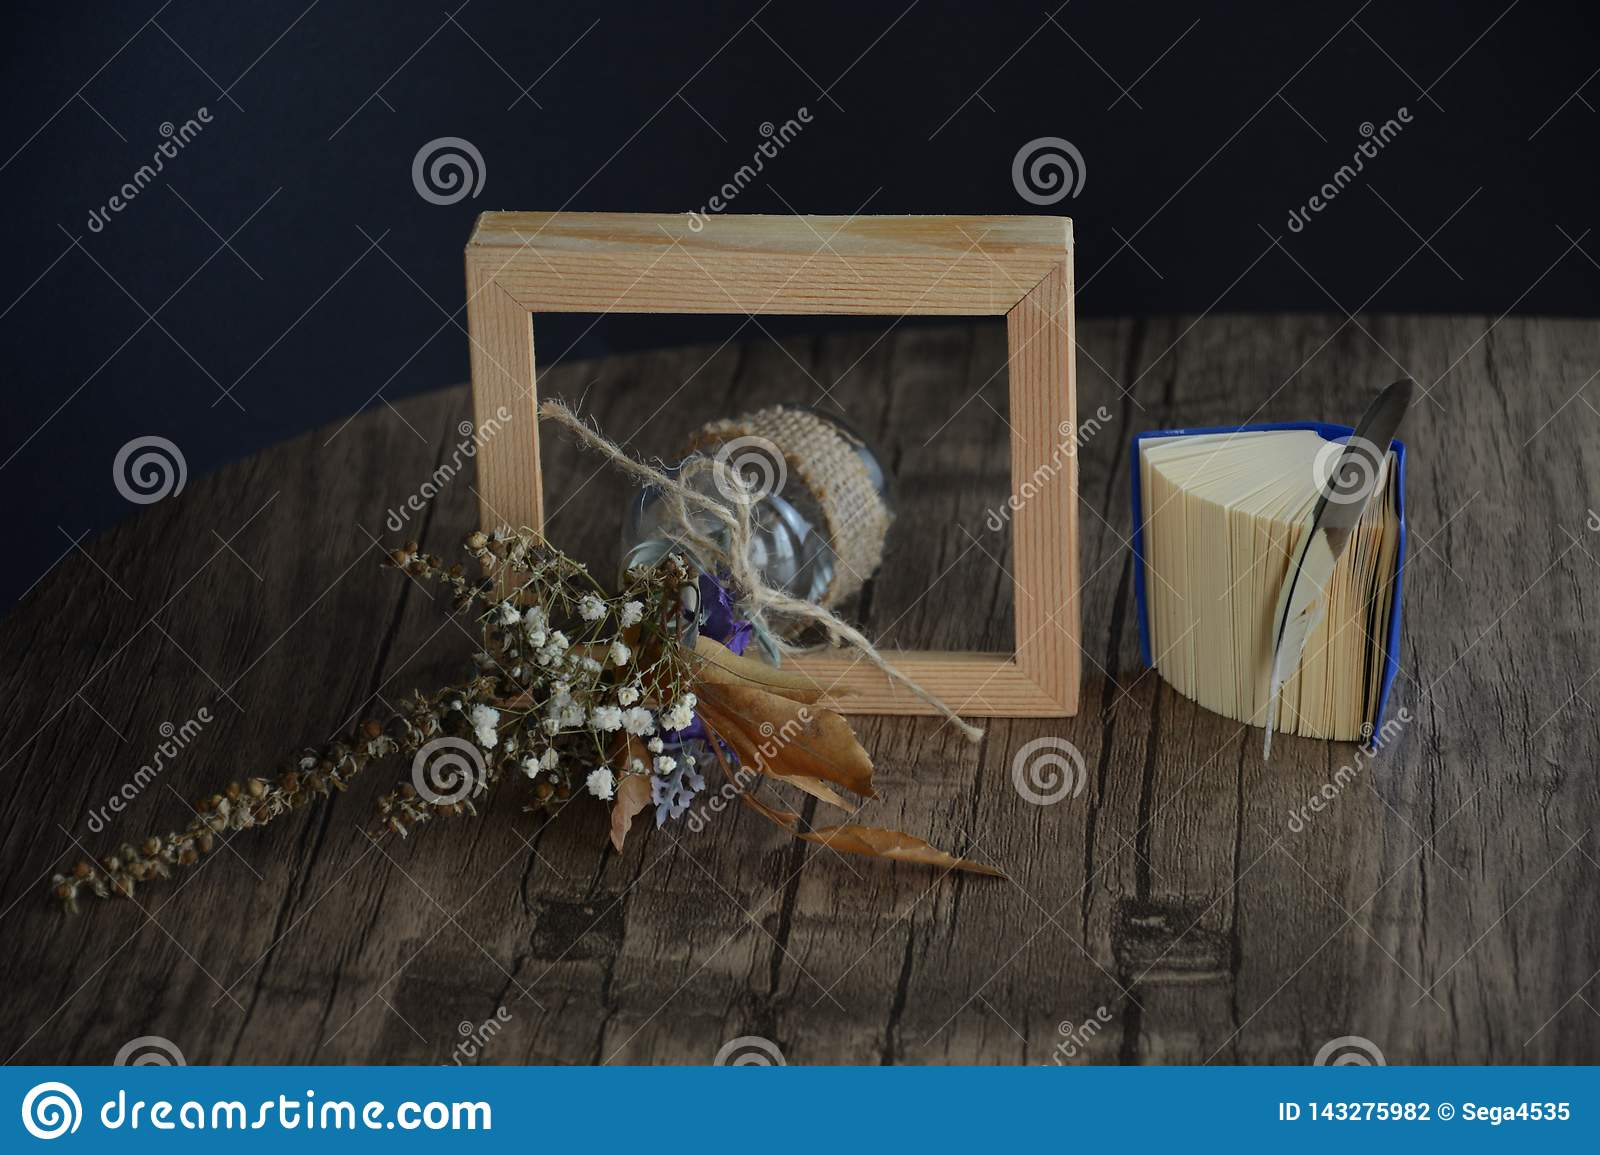 Dried flower in the frame